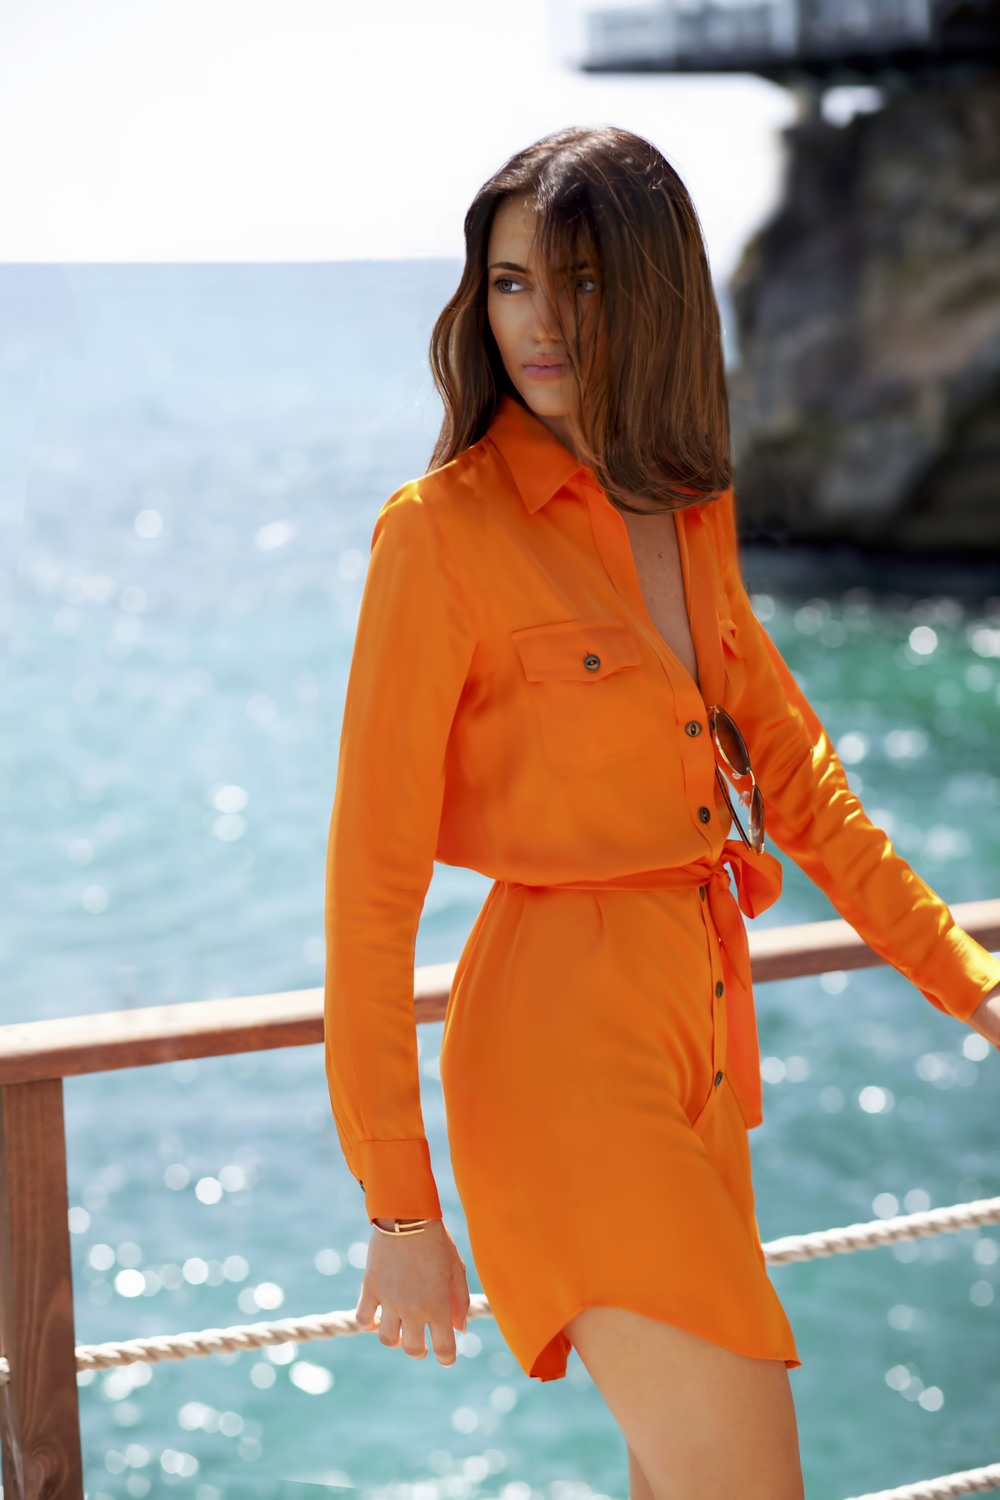 photo 1: TheVanillawoods Blogger Maureen Sophie Kragt is wearing a silk orange dress by Ralph Lauren in Monaco, For more visit the blog www.thevanillawoods.com.